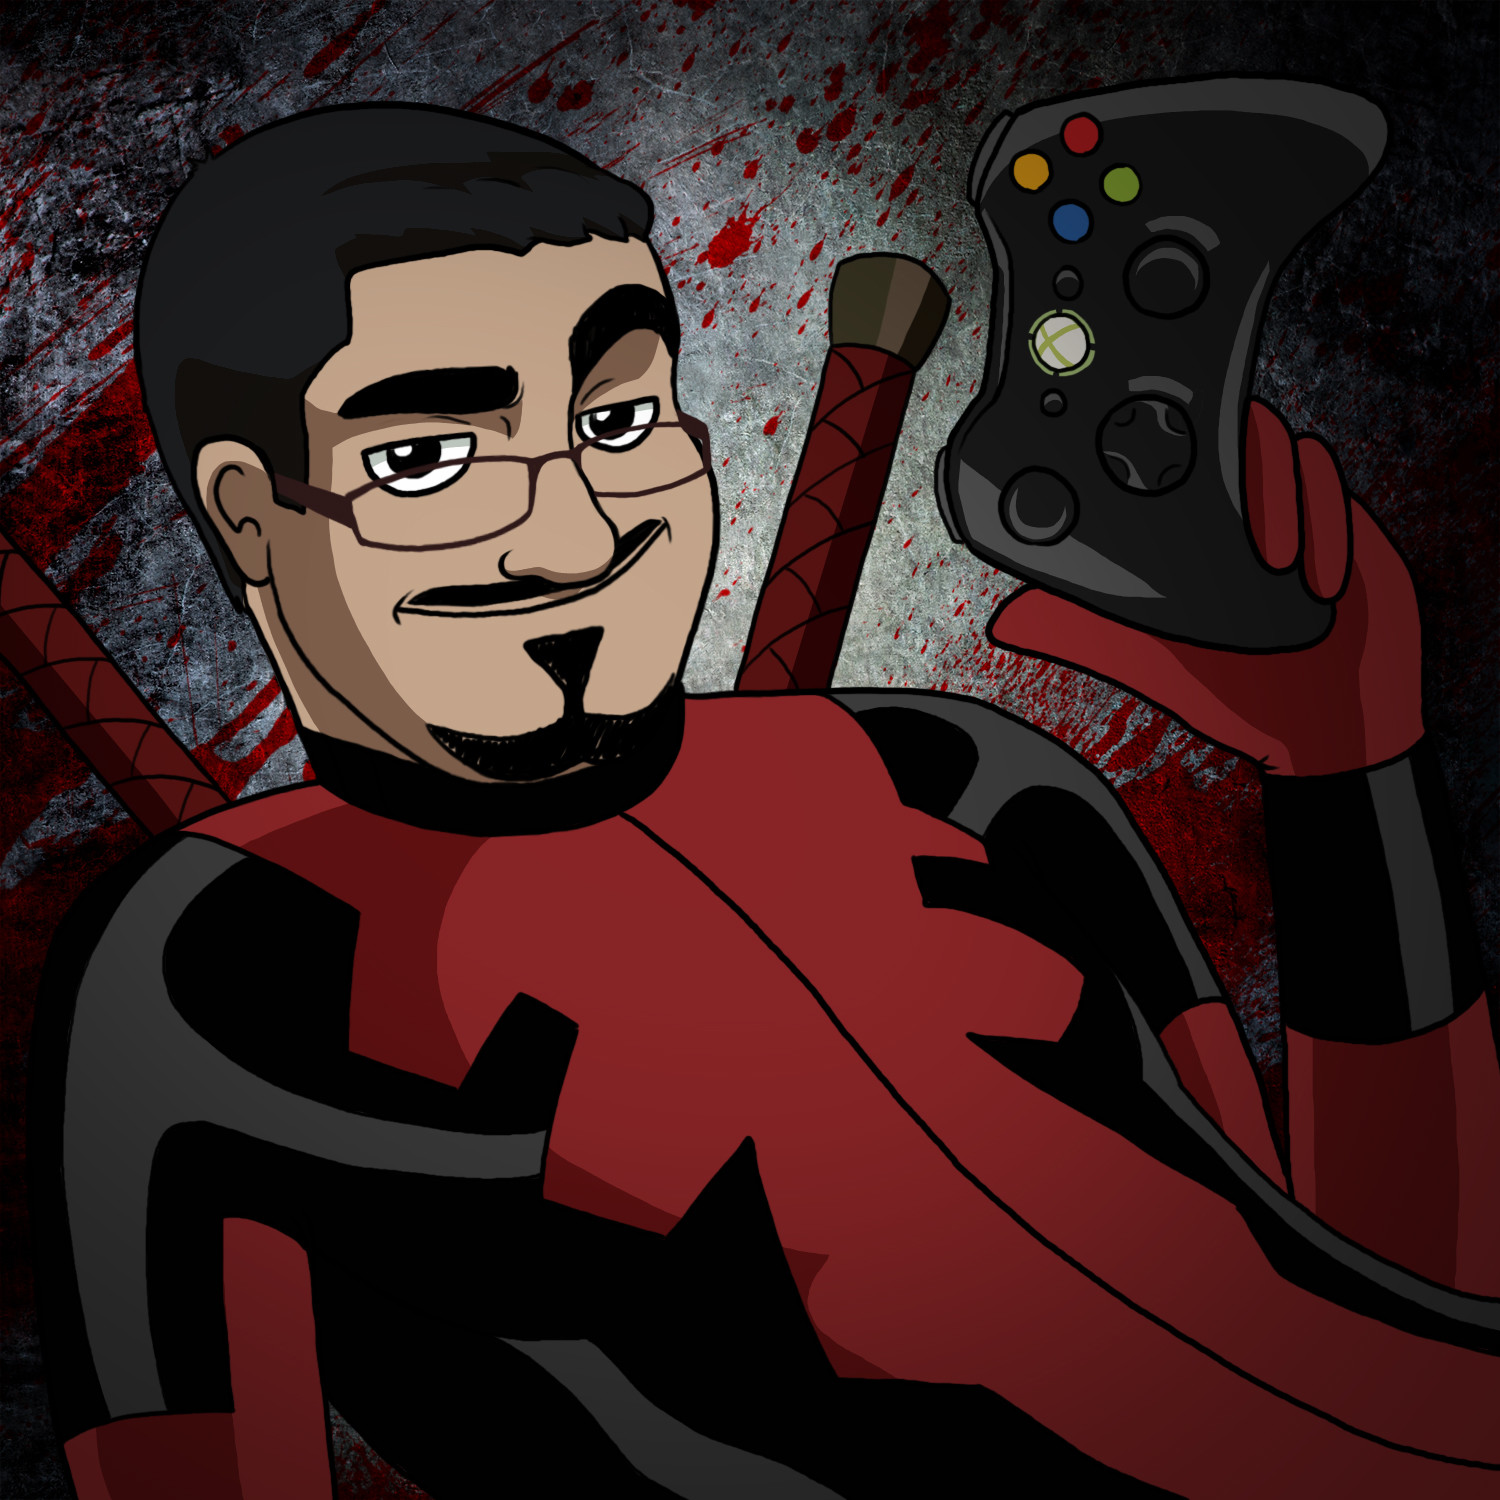 Luis (loves Deadpool)